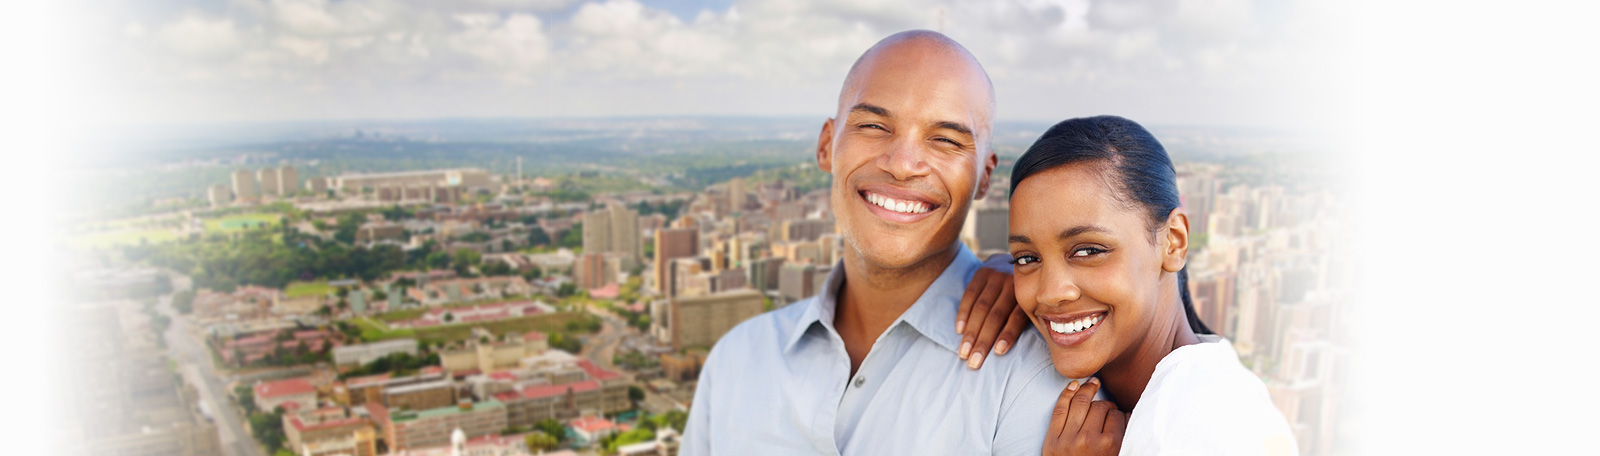 dating sites' couple with johannesburg skyline